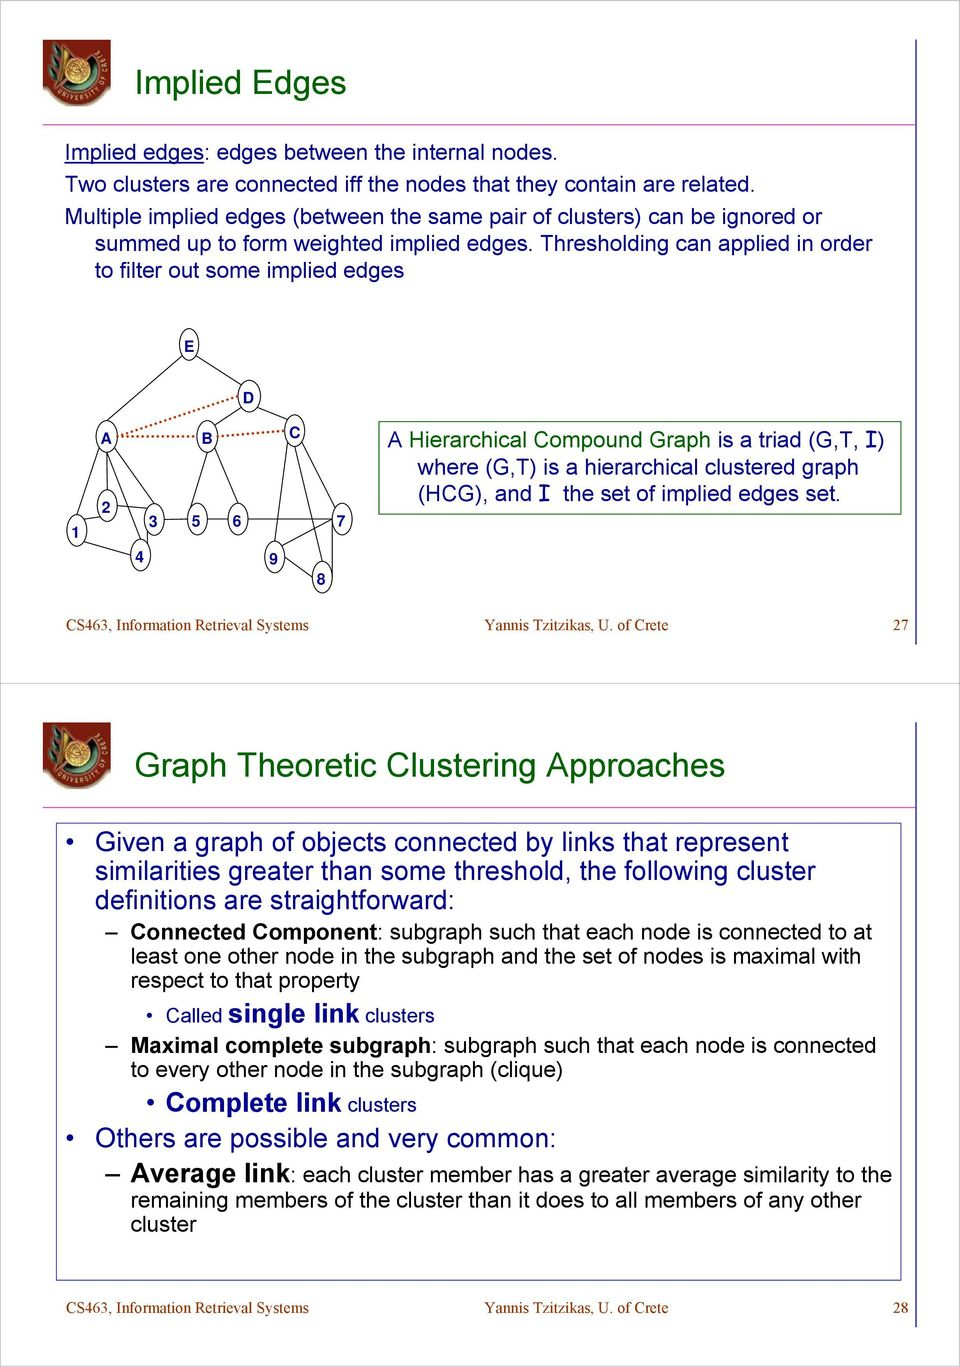 Thresholding can applied in order to filter out some implied edges E D 1 A B C 2 3 5 6 7 4 9 8 A Hierarchical Compound Graph is a triad (G,T, I) where (G,T) is a hierarchical clustered graph (HCG),